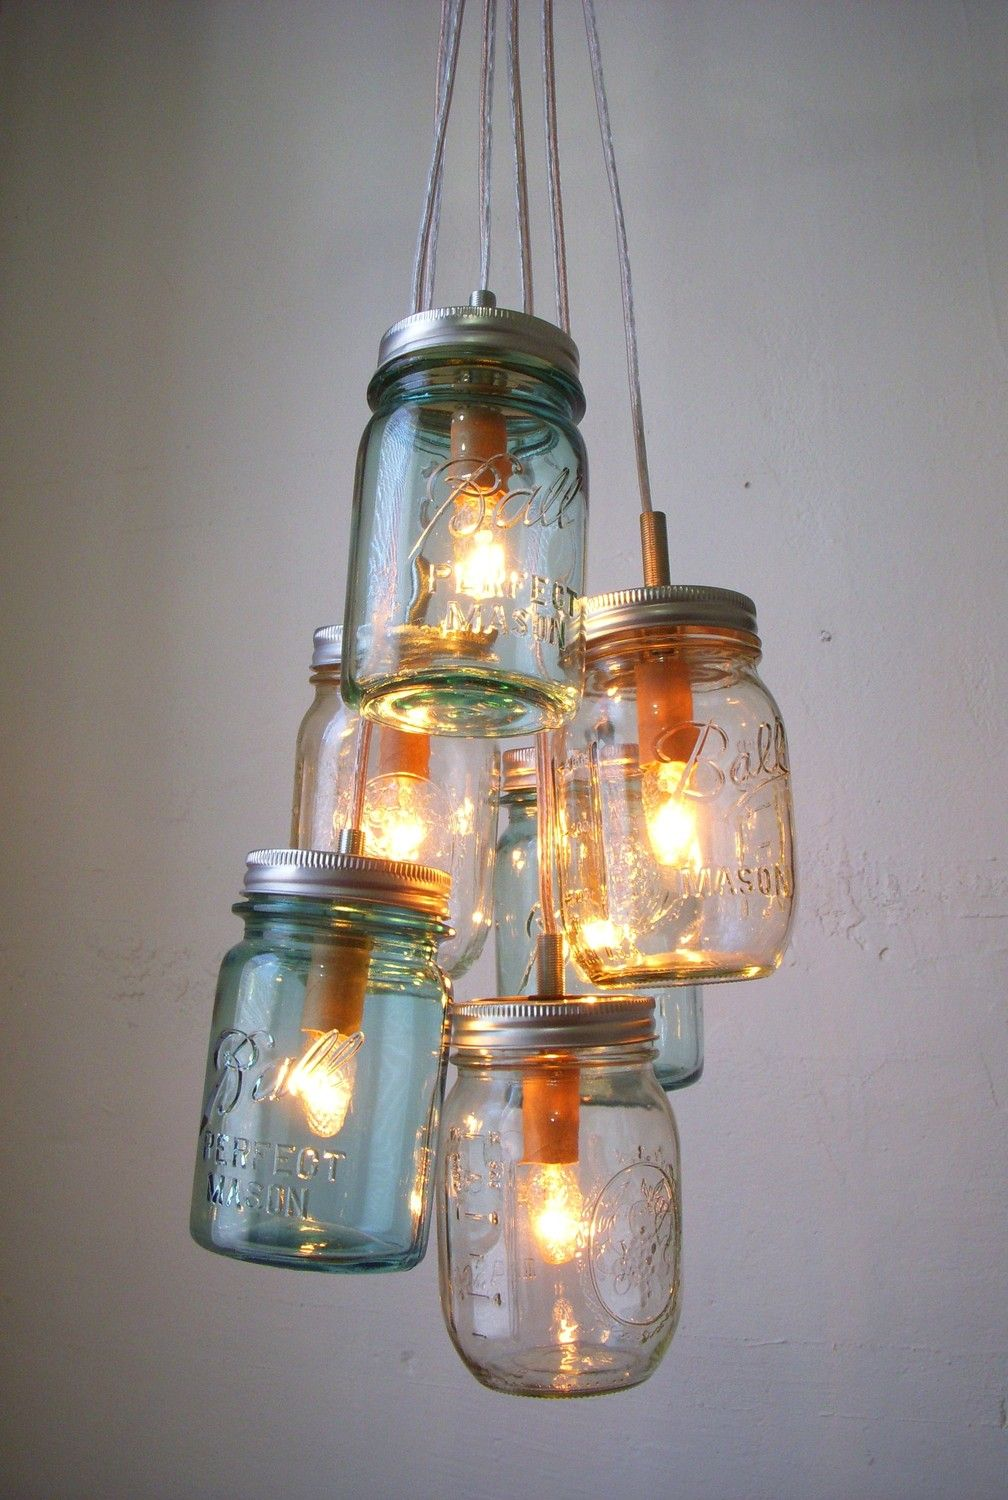 Sapphire ocean mason jar chandelier 22500 via etsy 3 pint sapphire ocean mason jar chandelier 22500 via etsy 3 pint sized antique arubaitofo Gallery